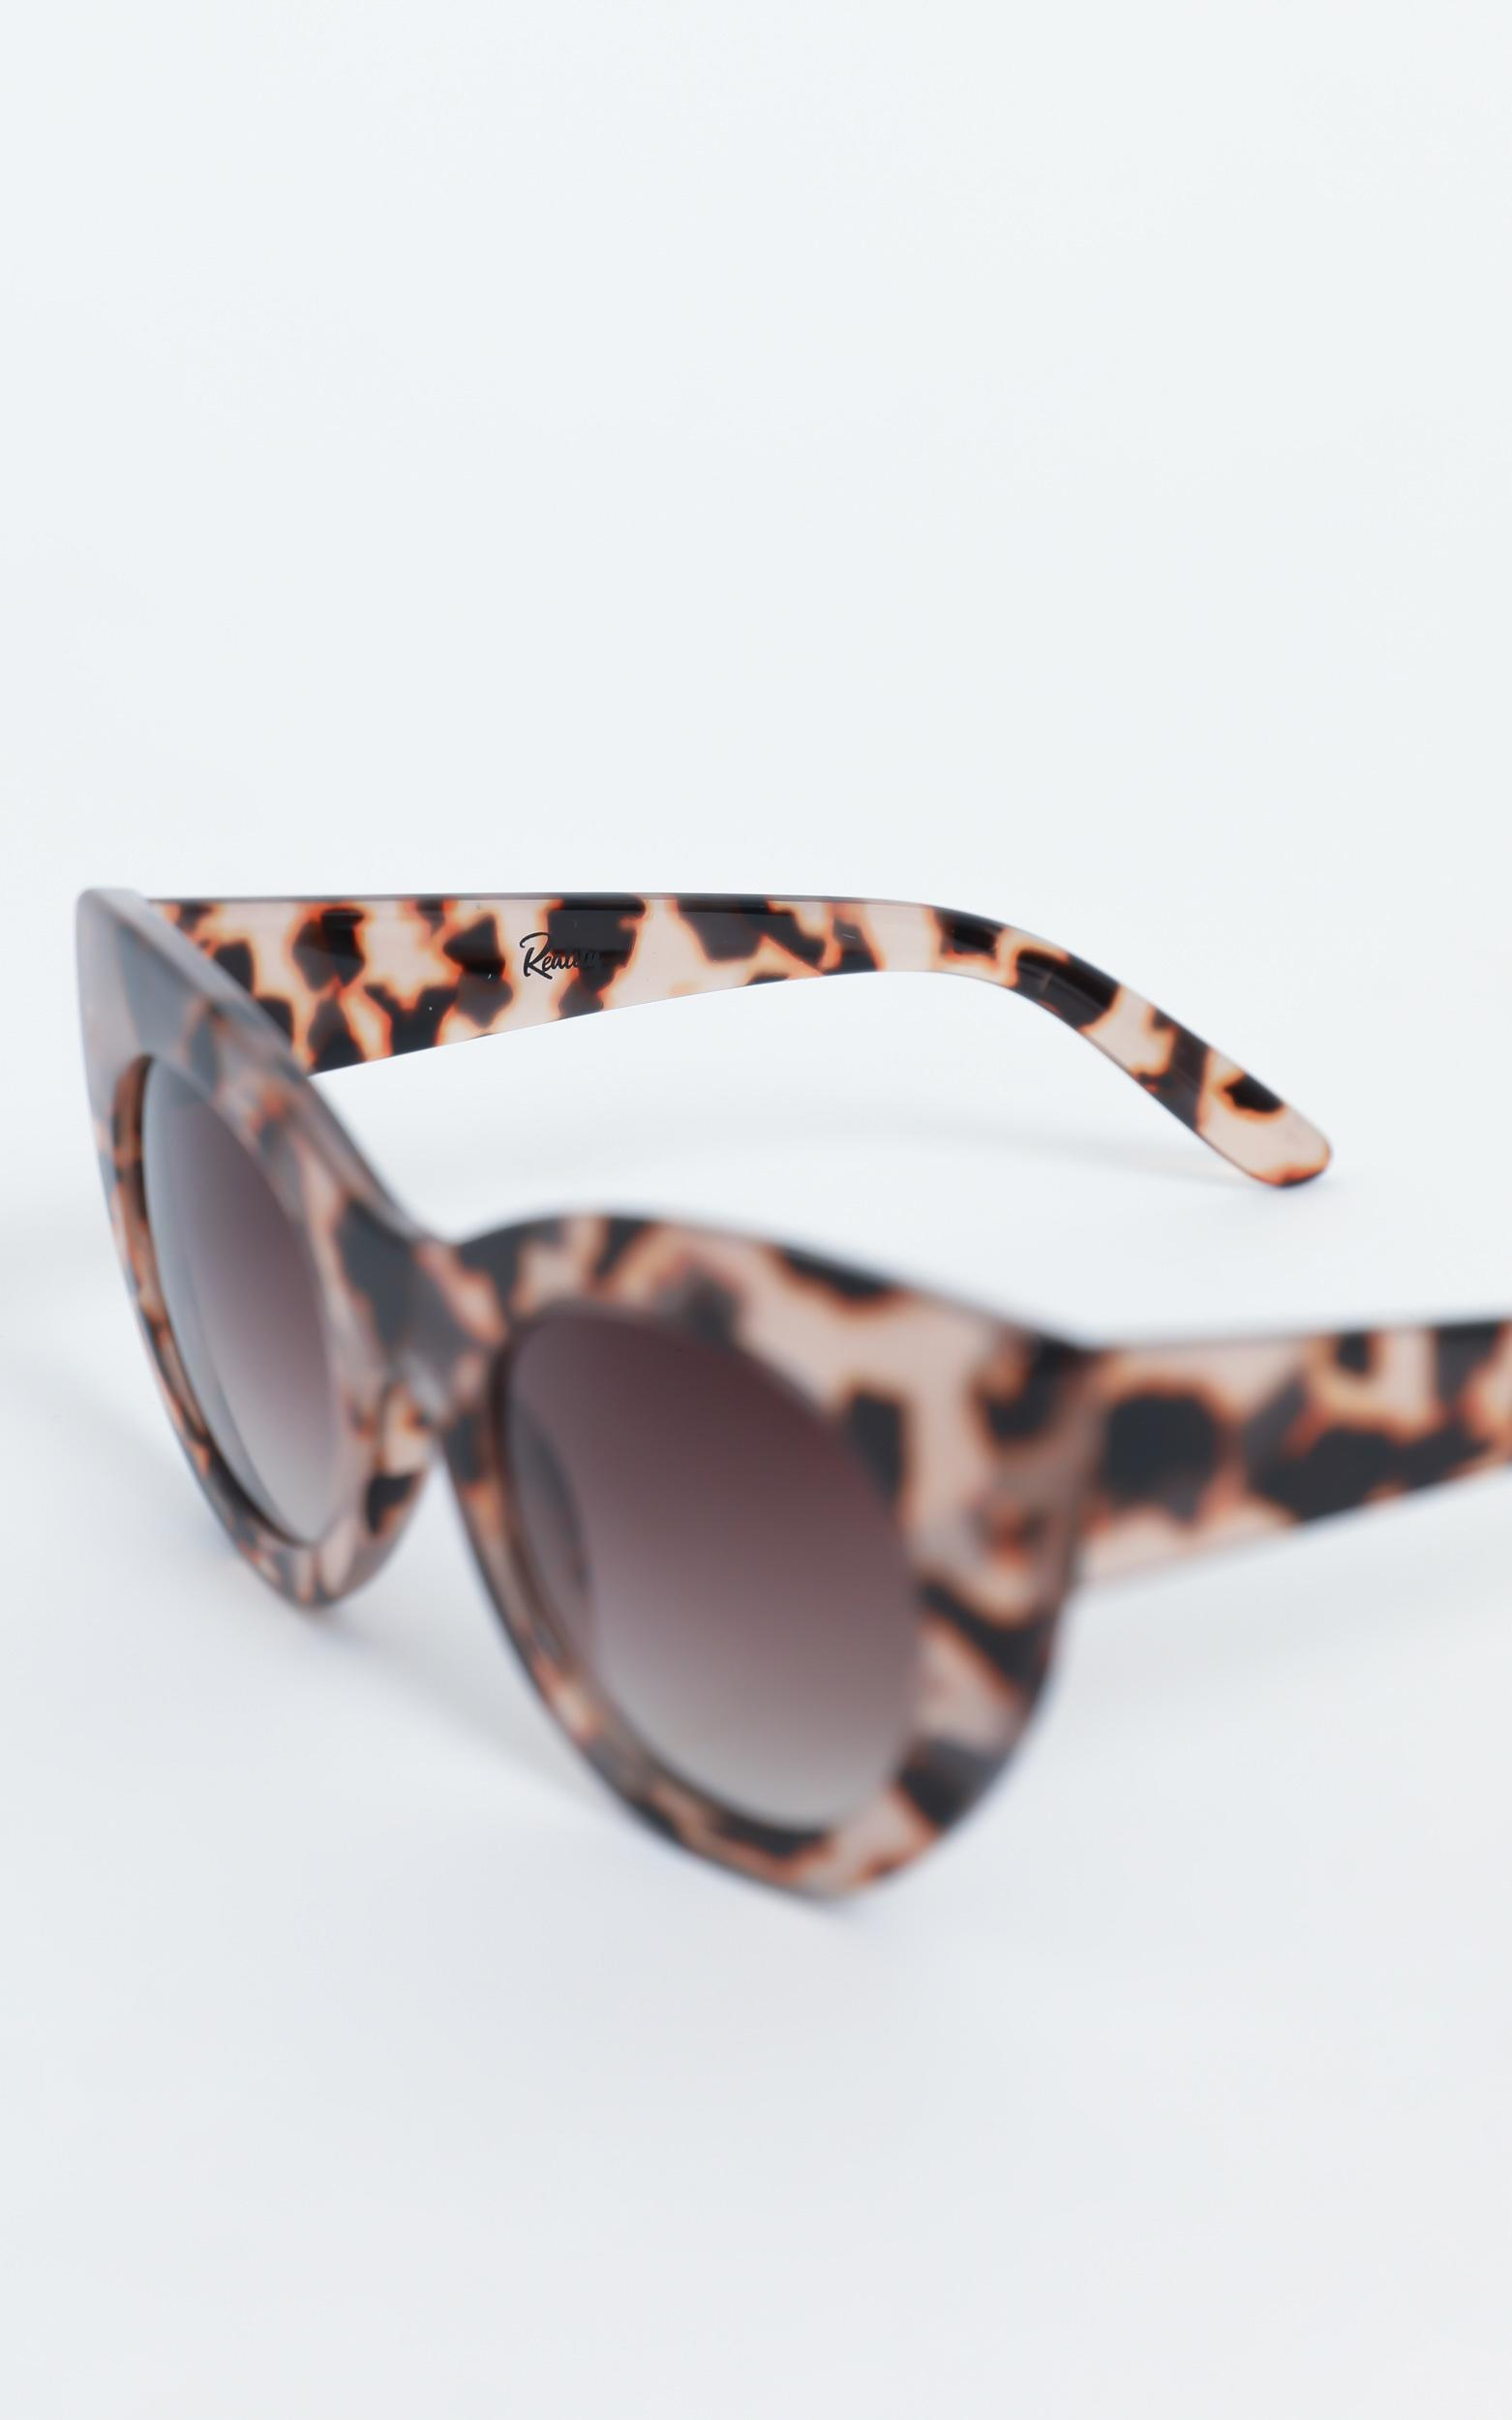 Reality Eyewear - Wild + Free Sunglasses in Blossom Turtle, , hi-res image number null